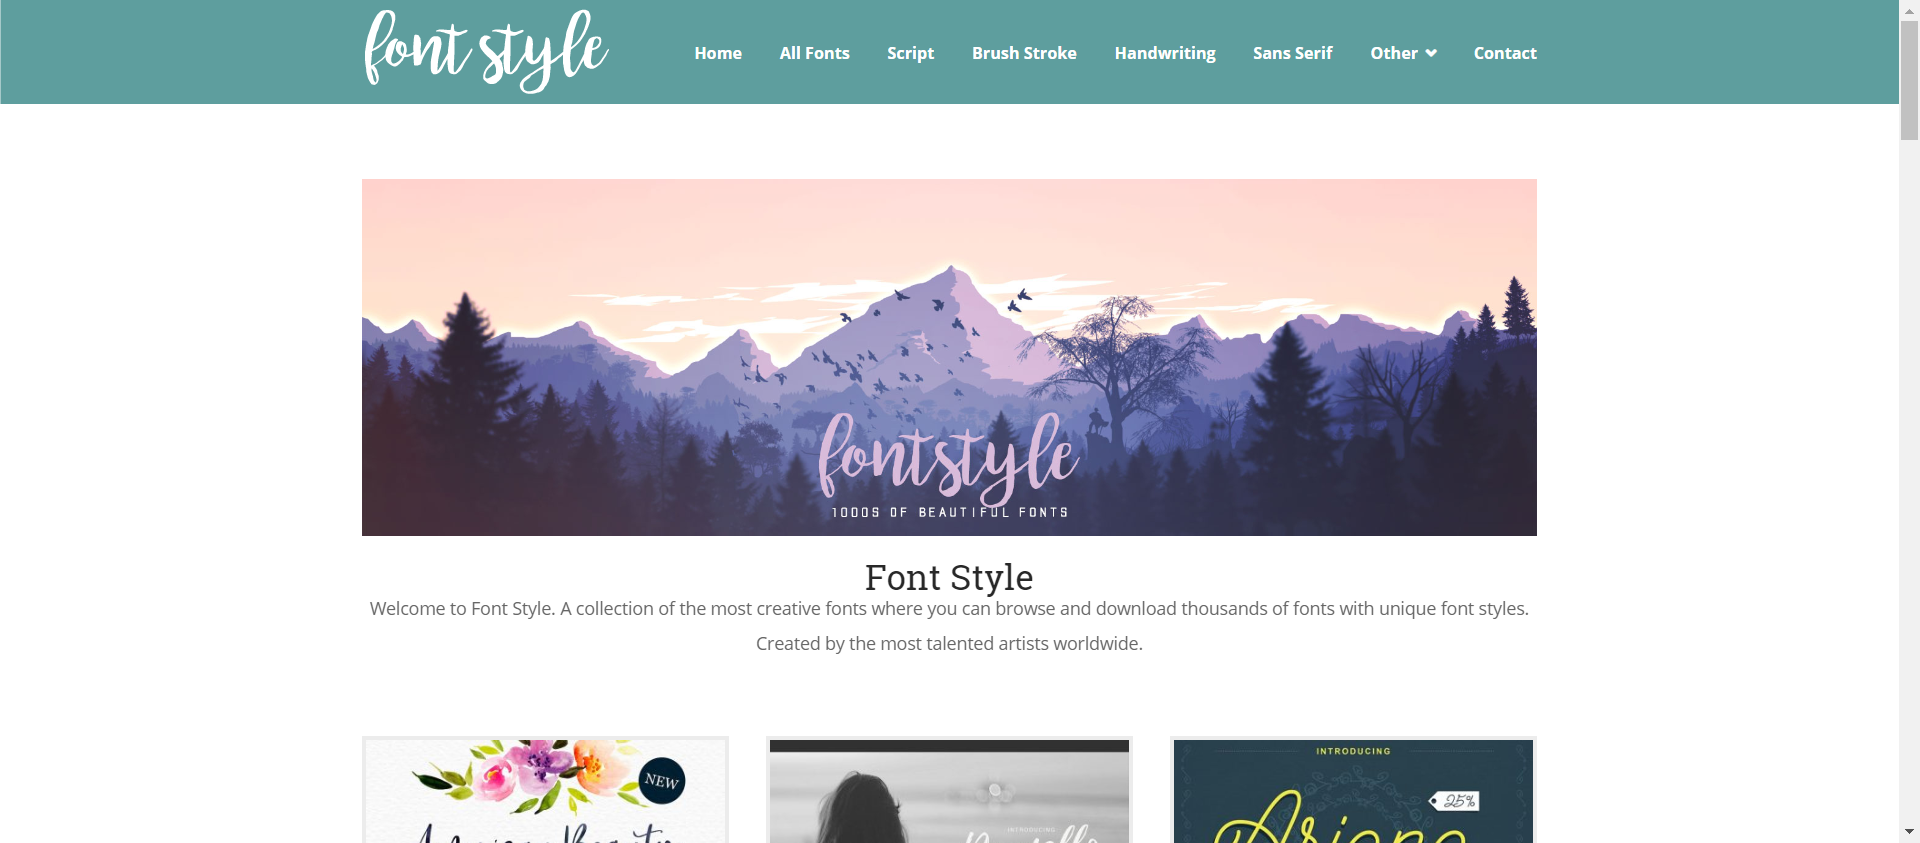 Font style website image